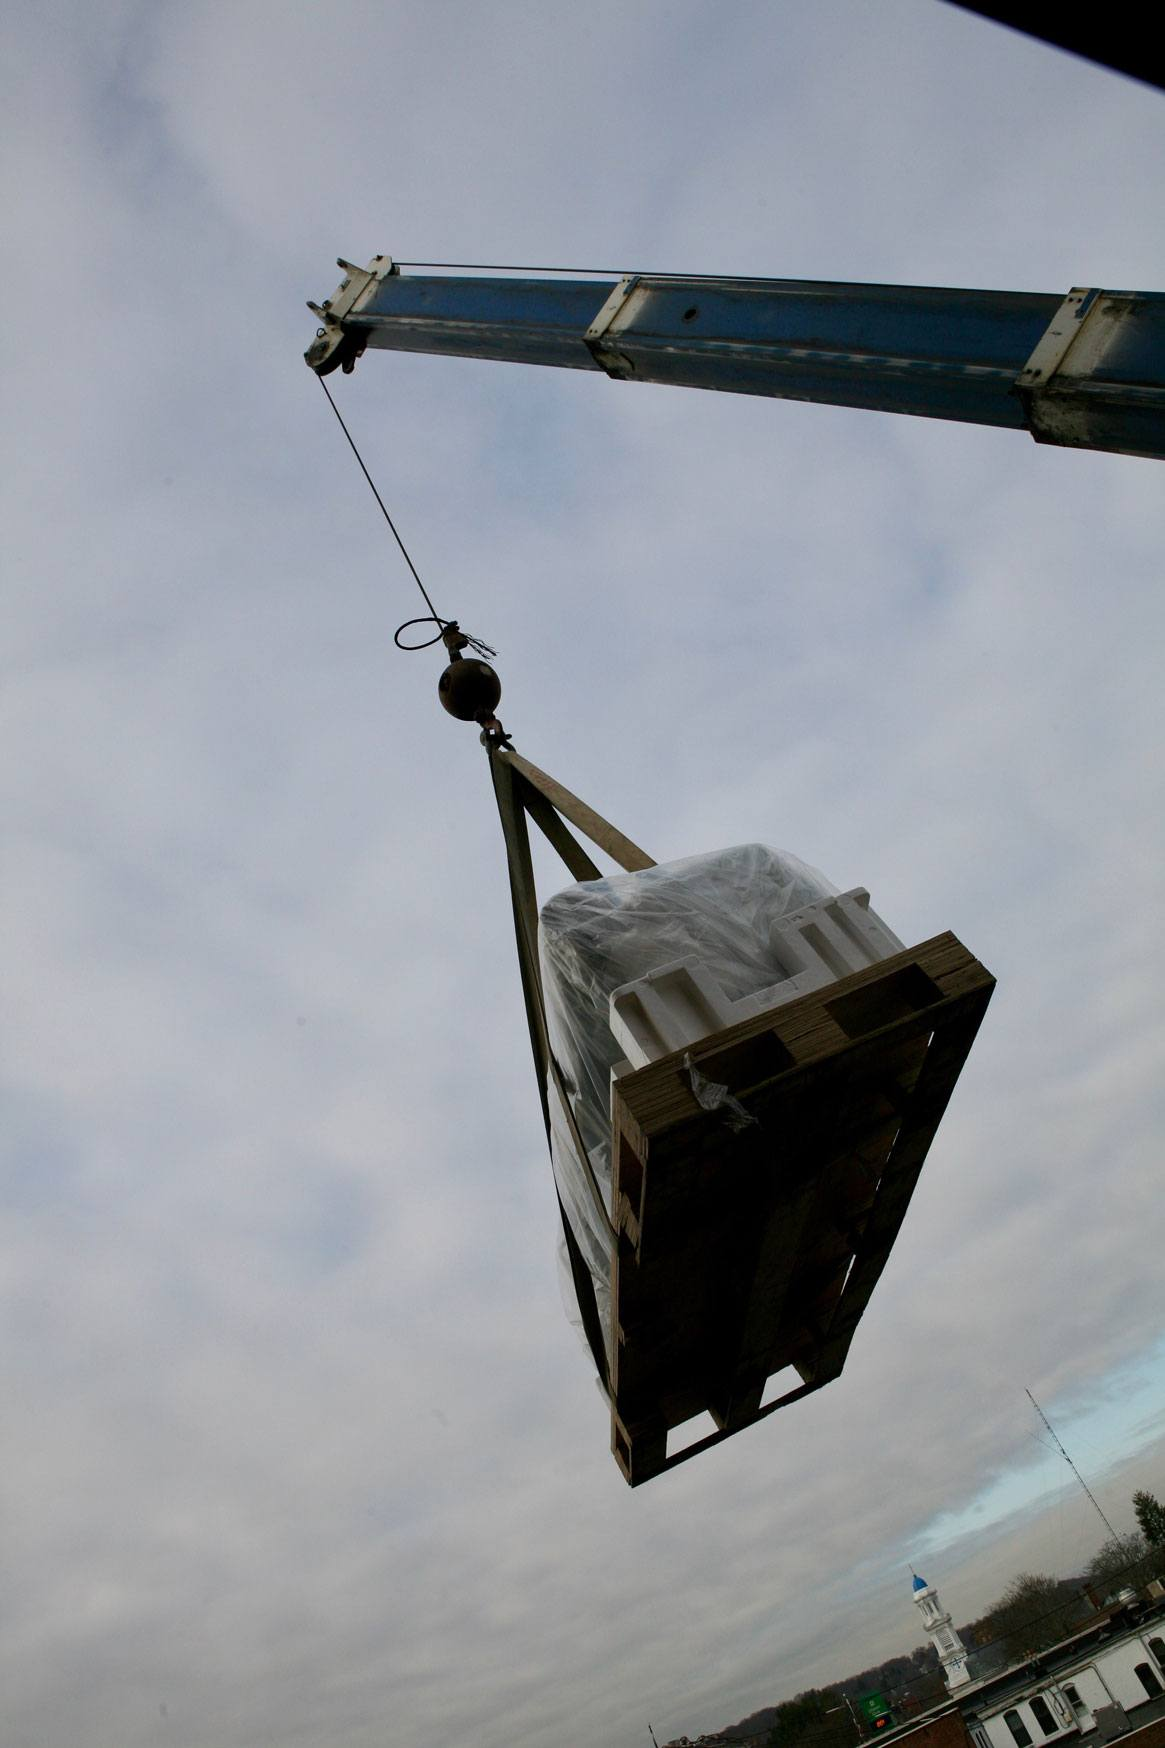 Epson P20000 printer hoisted in the sky by a crane